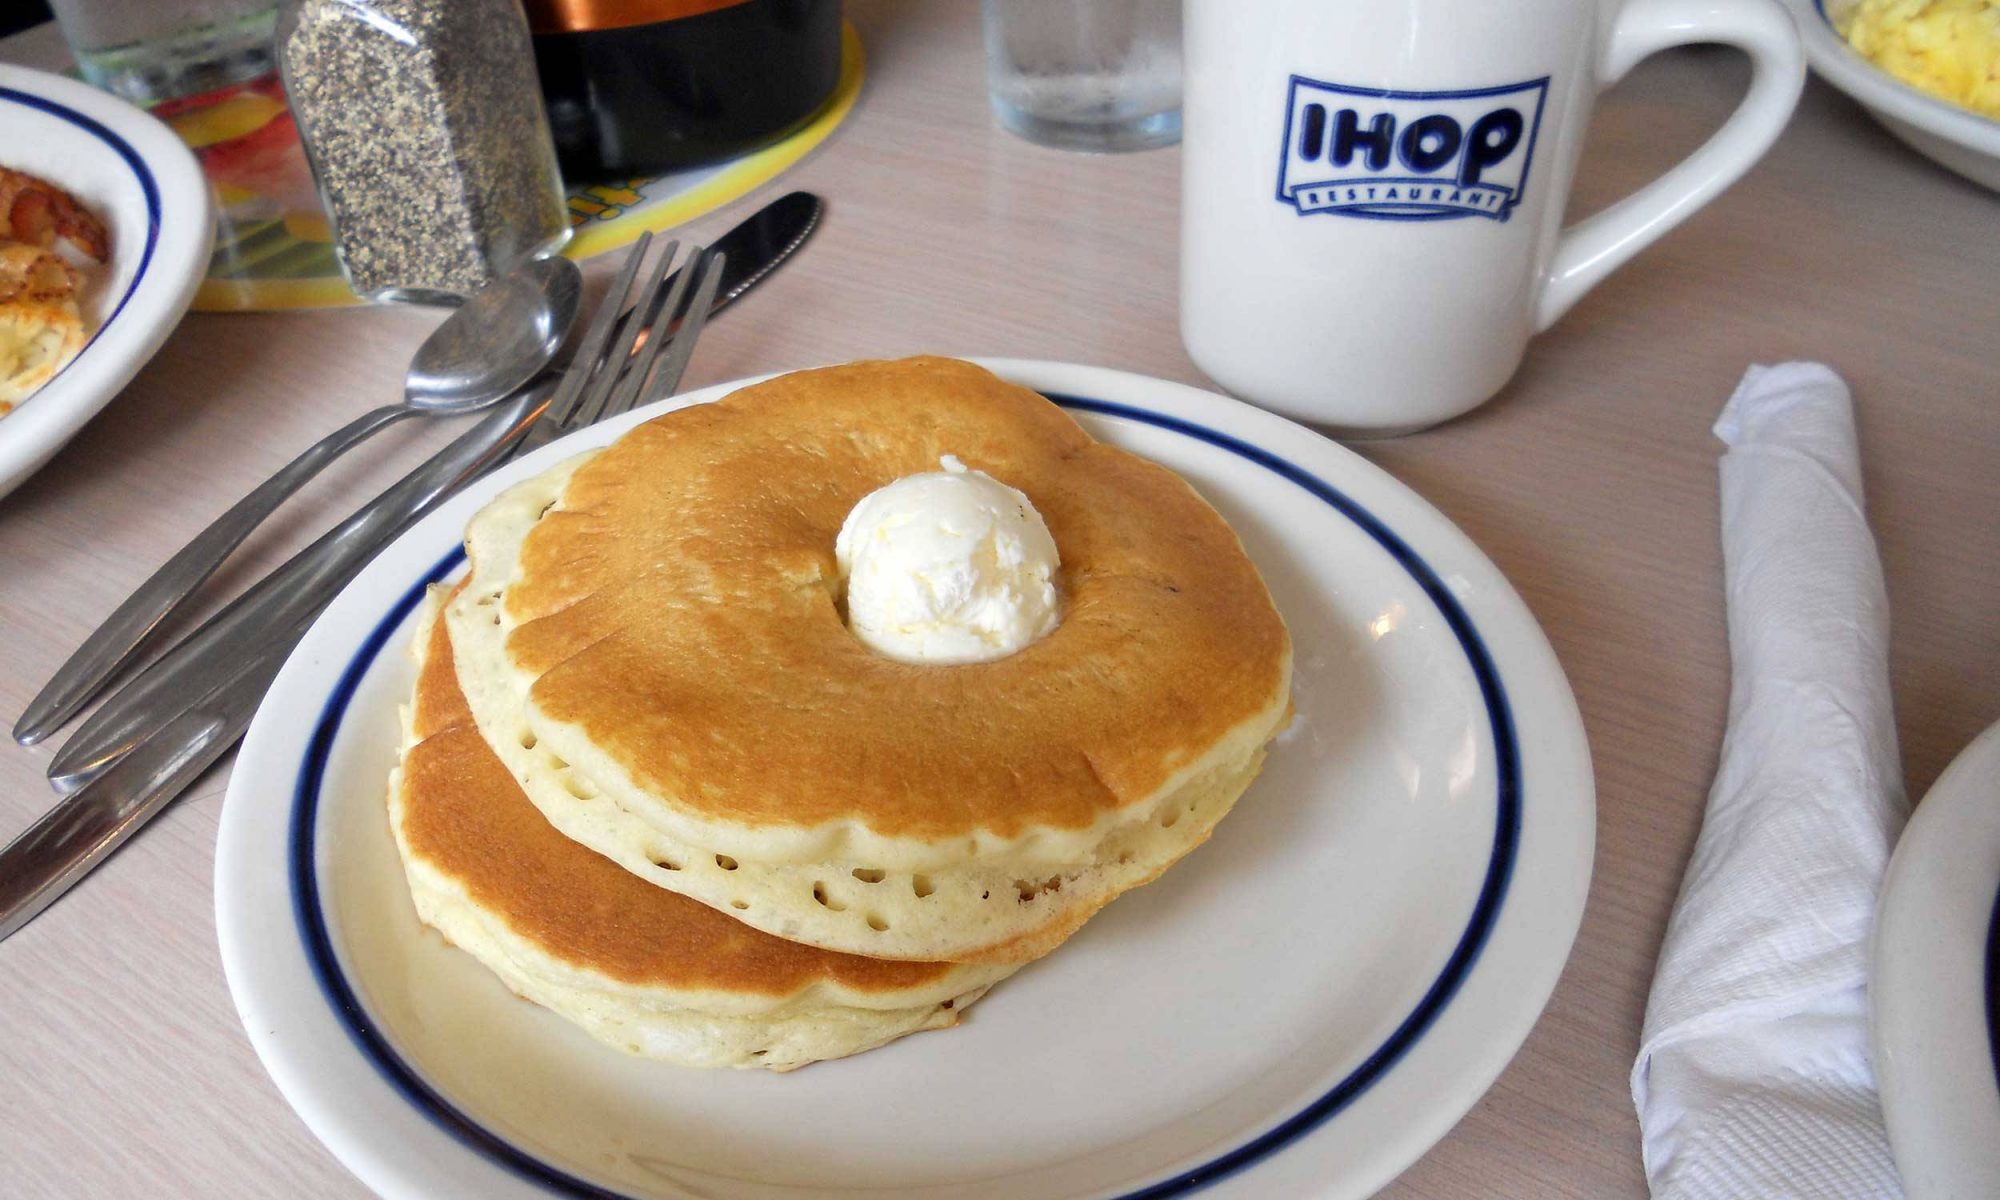 IHOP's Latest Creation Takes Pancakes to a New Level